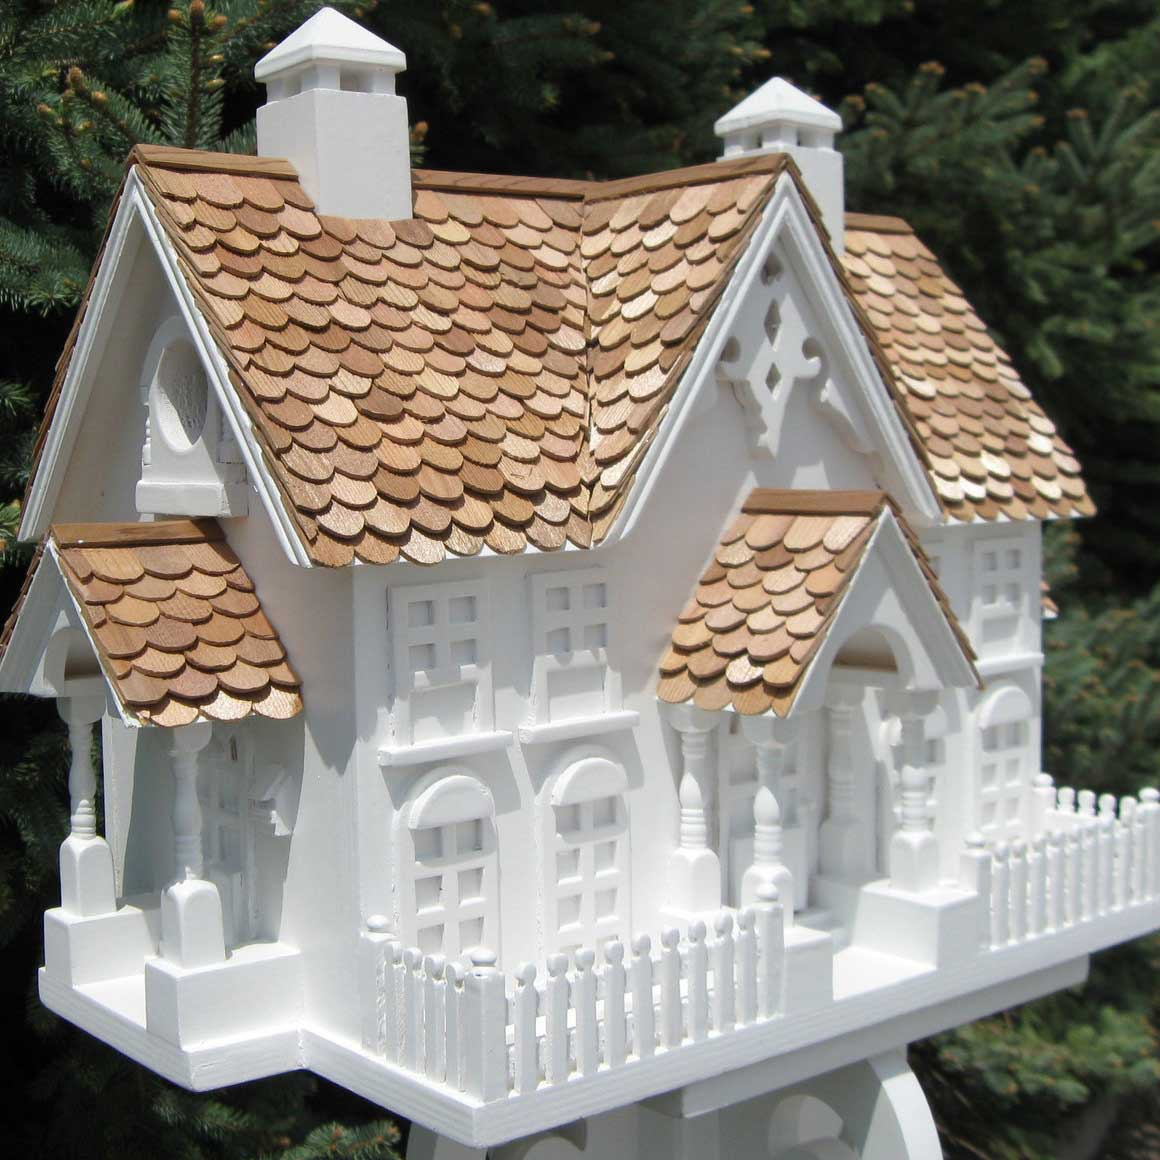 Decorative wrension bird house yard envy for Best birdhouse designs